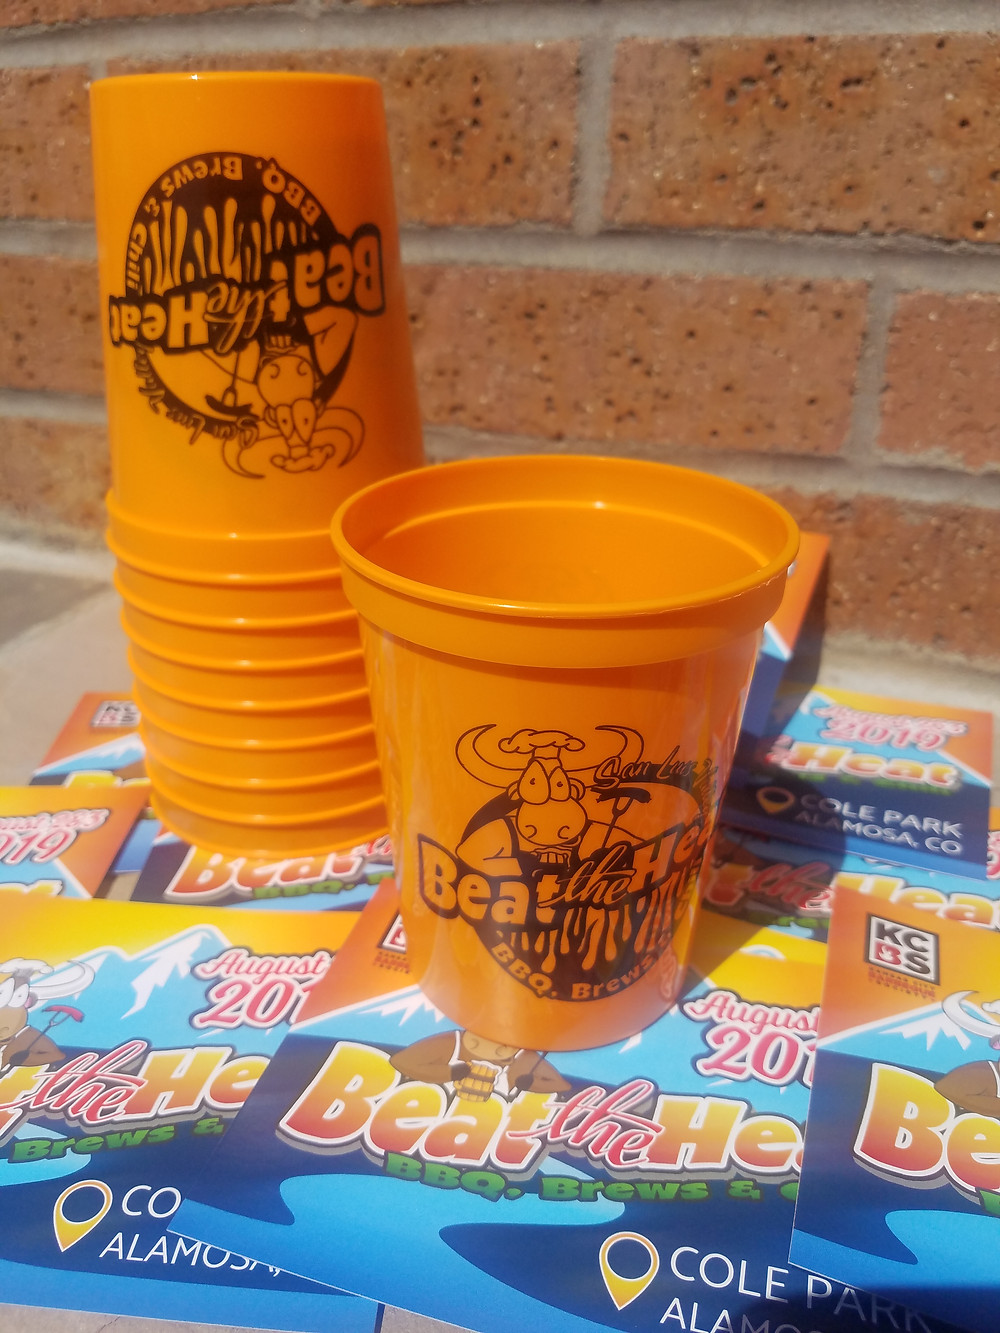 Cups can be used at the Beer Garden & the Hydration Station, cutting down on single use cups at the beer garden AND plastic bottled water waste.